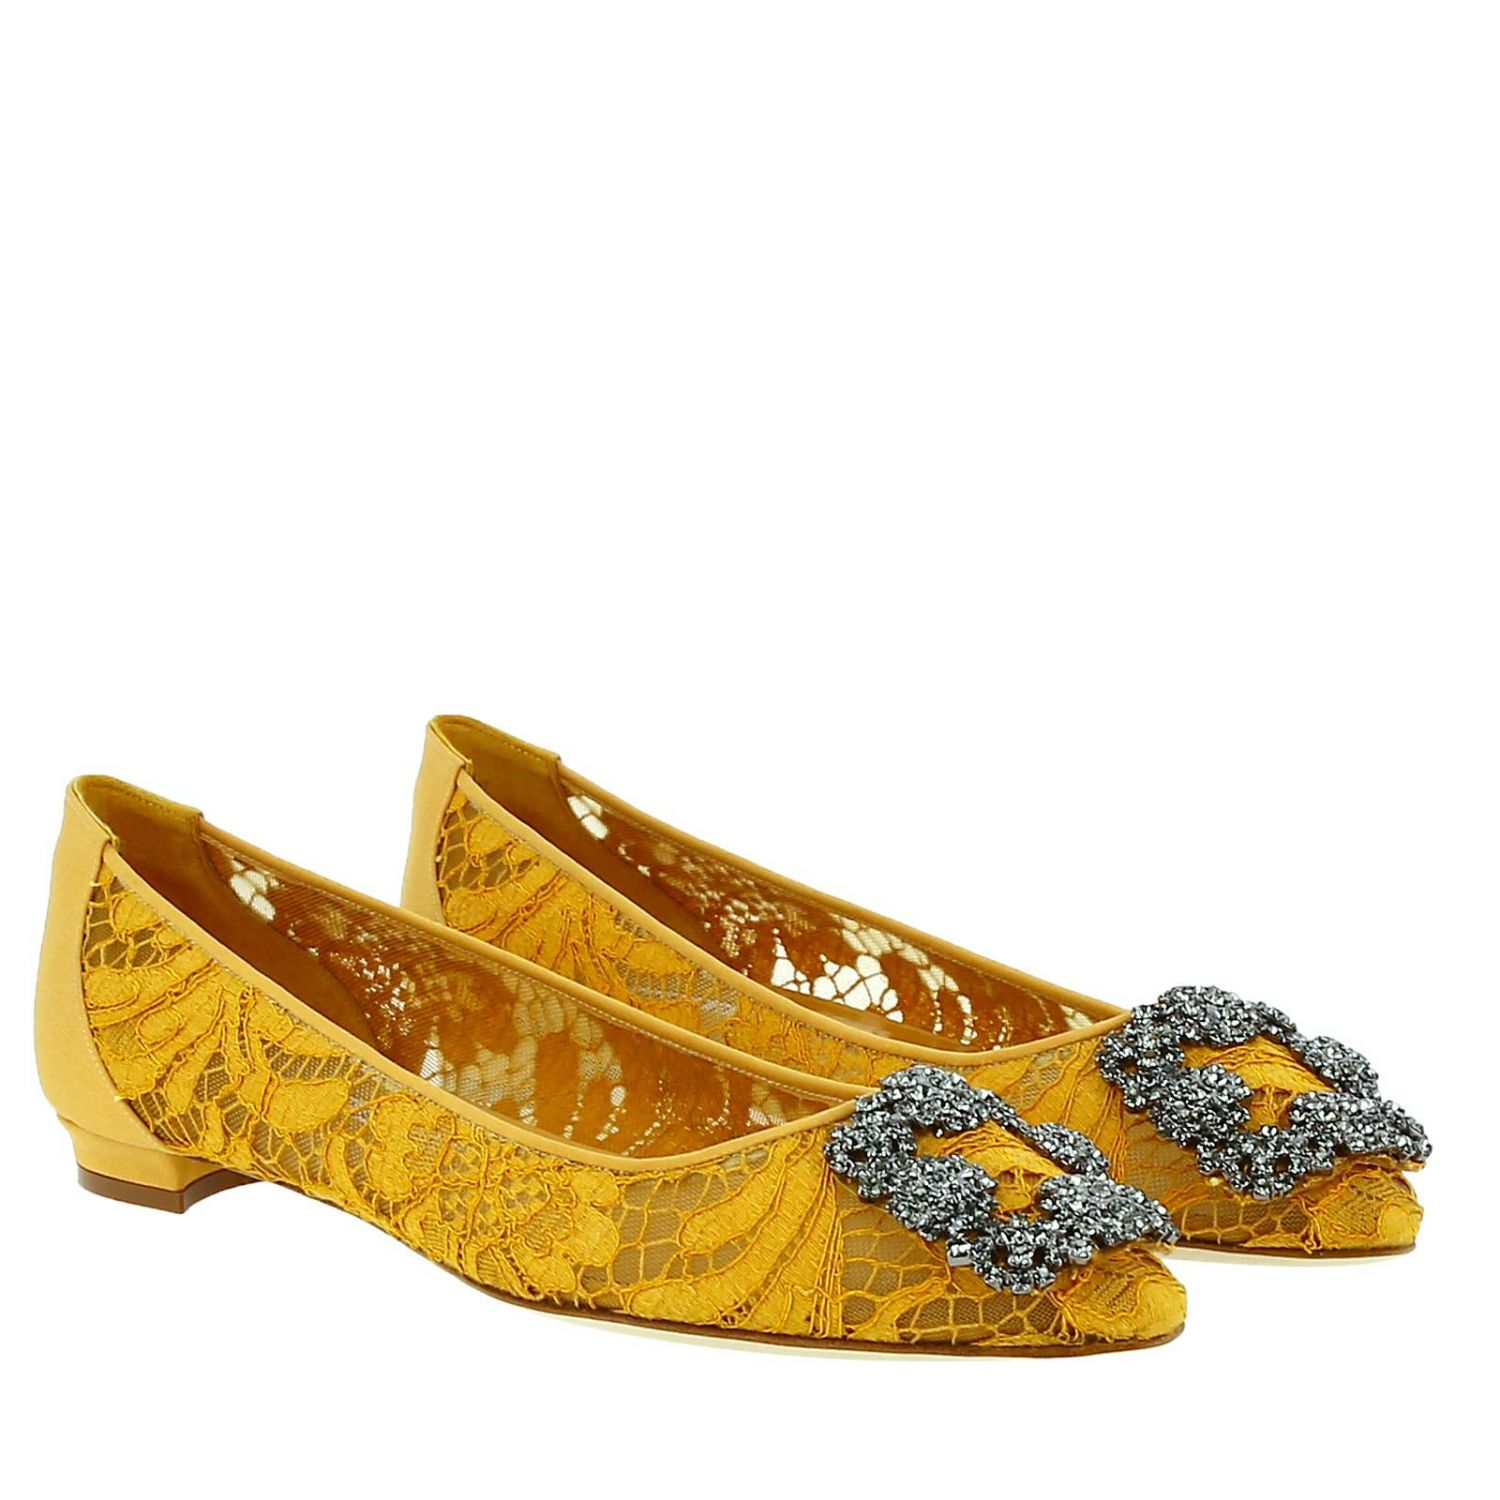 Hangisi Manolo Blahnik ballet flats in lace with smoky rhinestone buckle mustard 2